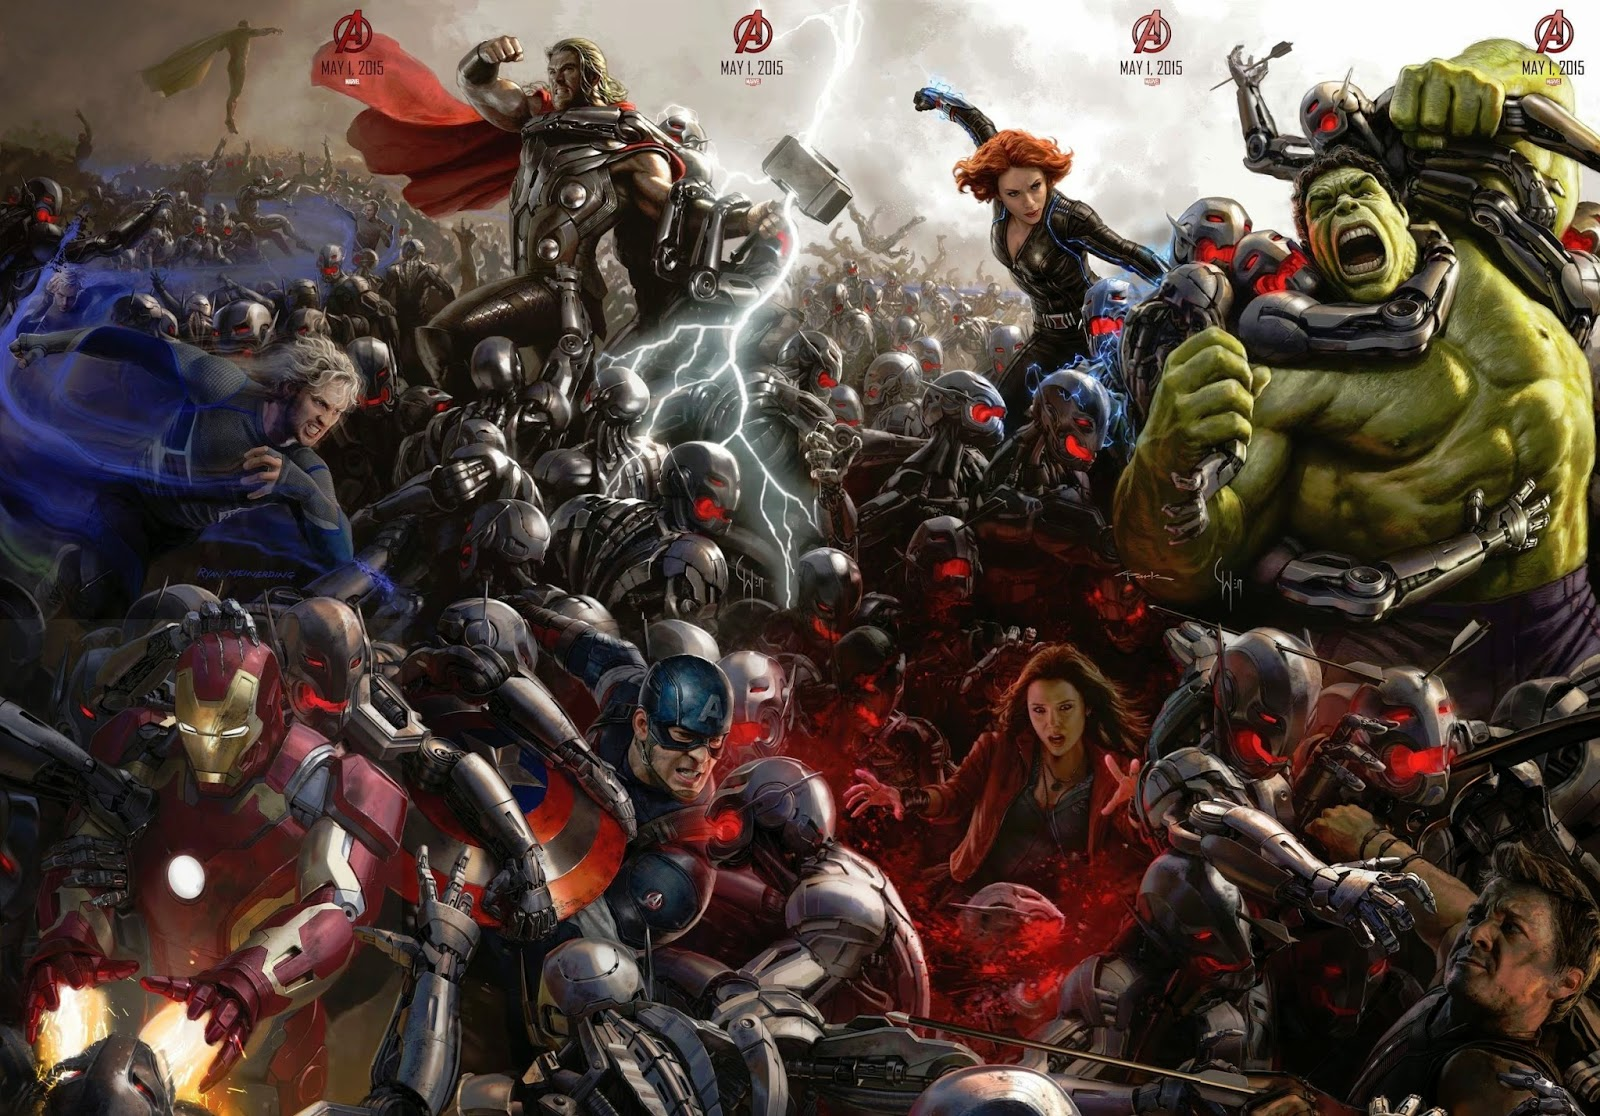 Avengers: Age of Ultron & Ant-Man - New Posters & Concept Art Image - SDCC 2014